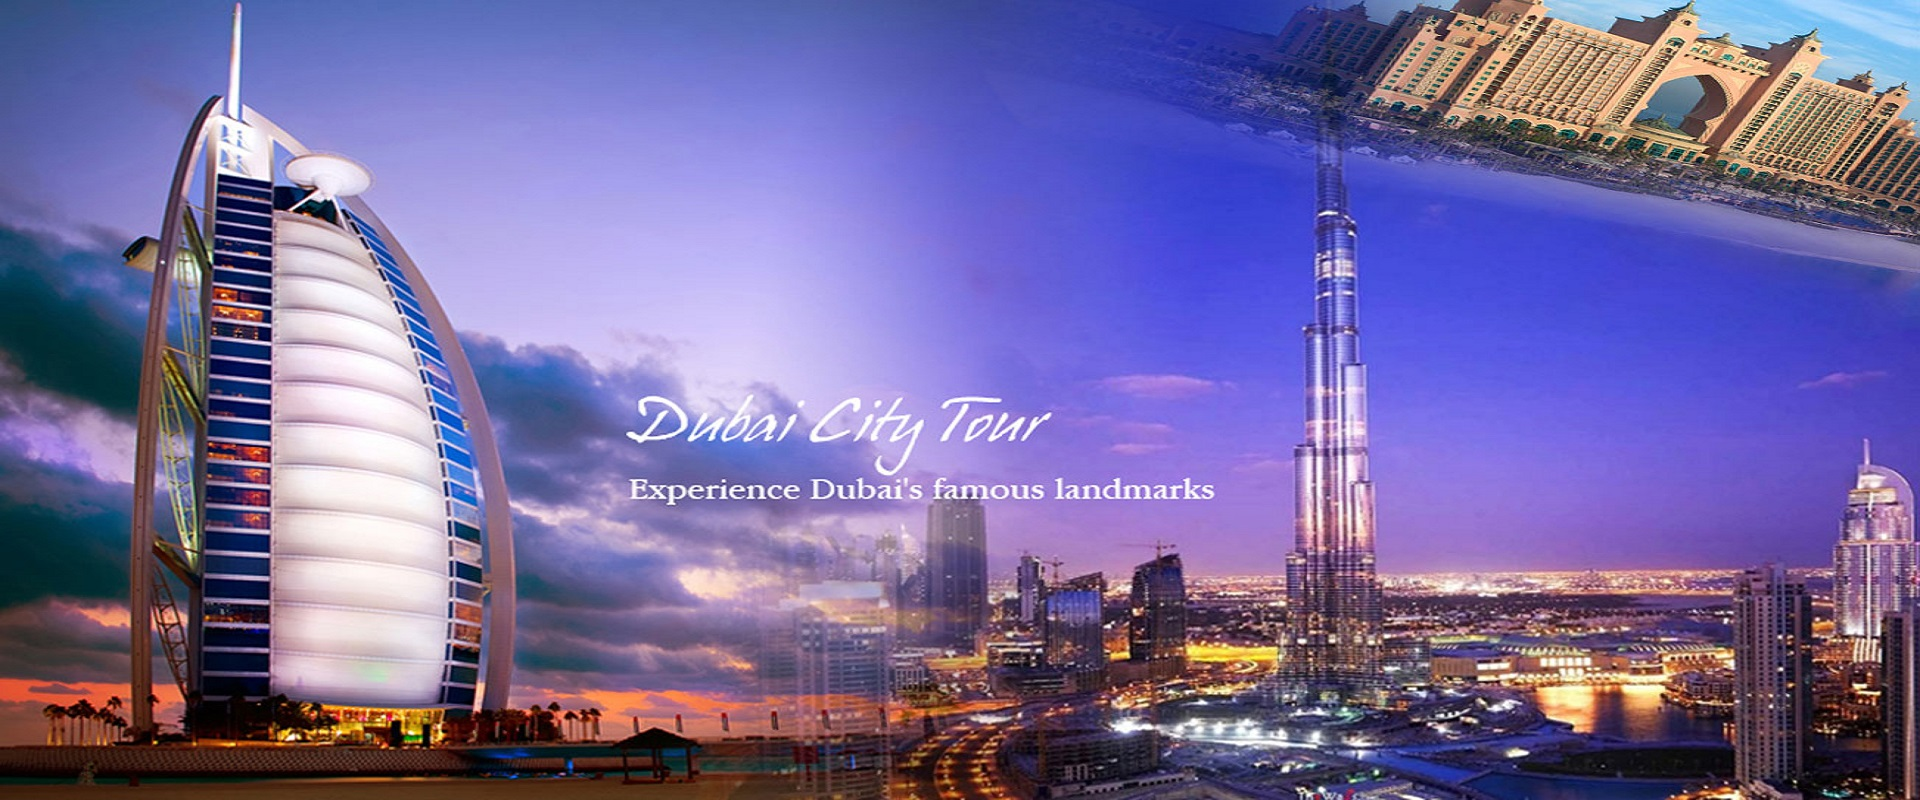 Combo Tour - Dubai City Tour and Desert Safari